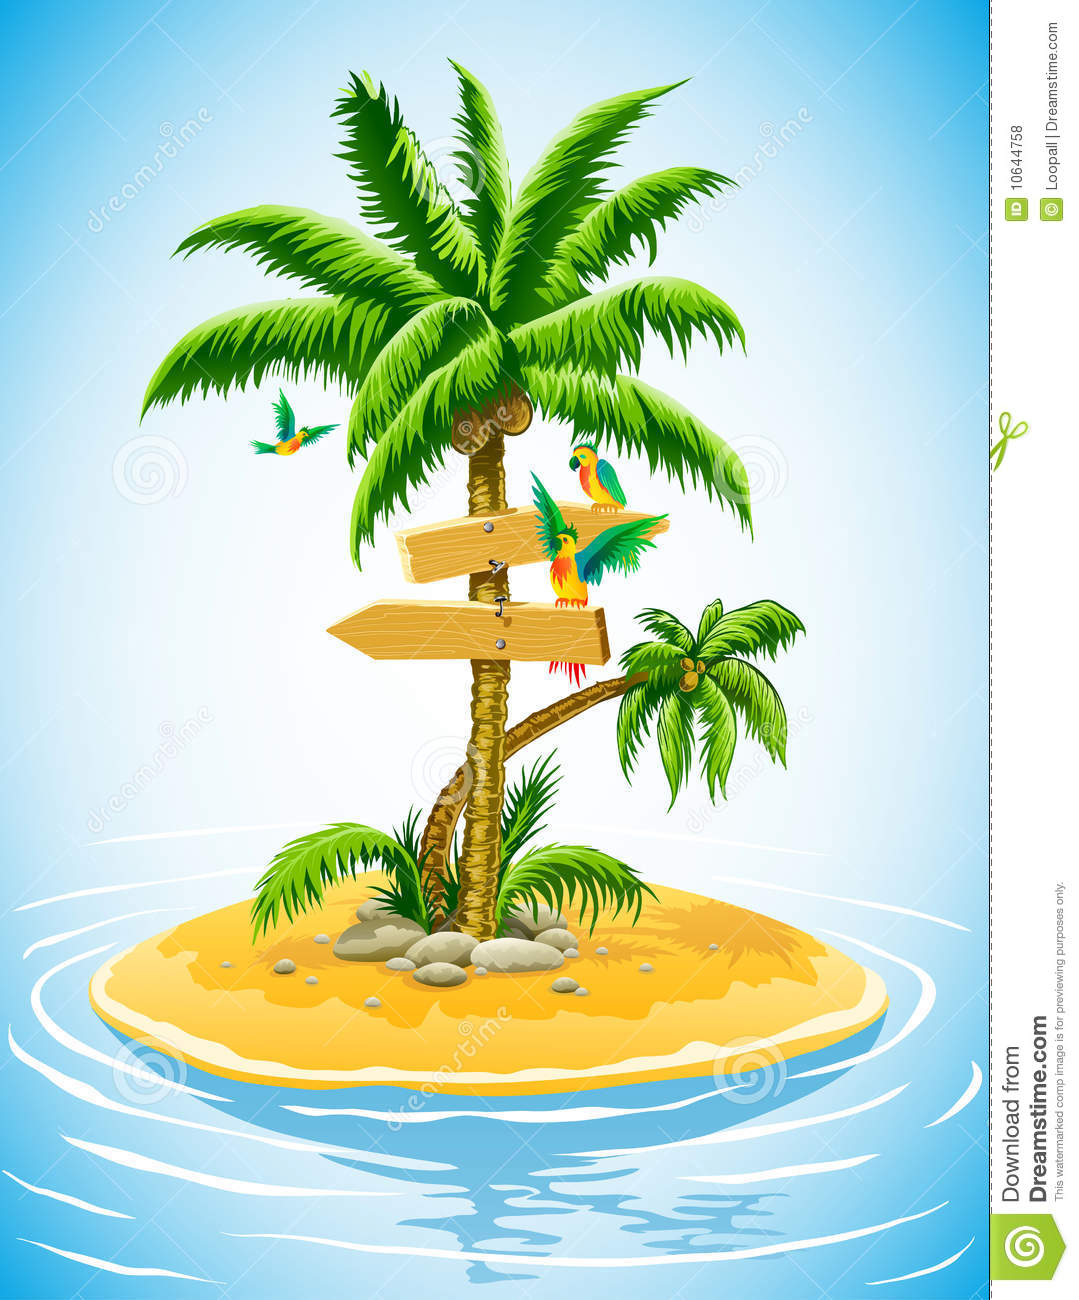 Palm Tree Island: Tropical Palm Tree On The Uninhabited Island Royalty Free